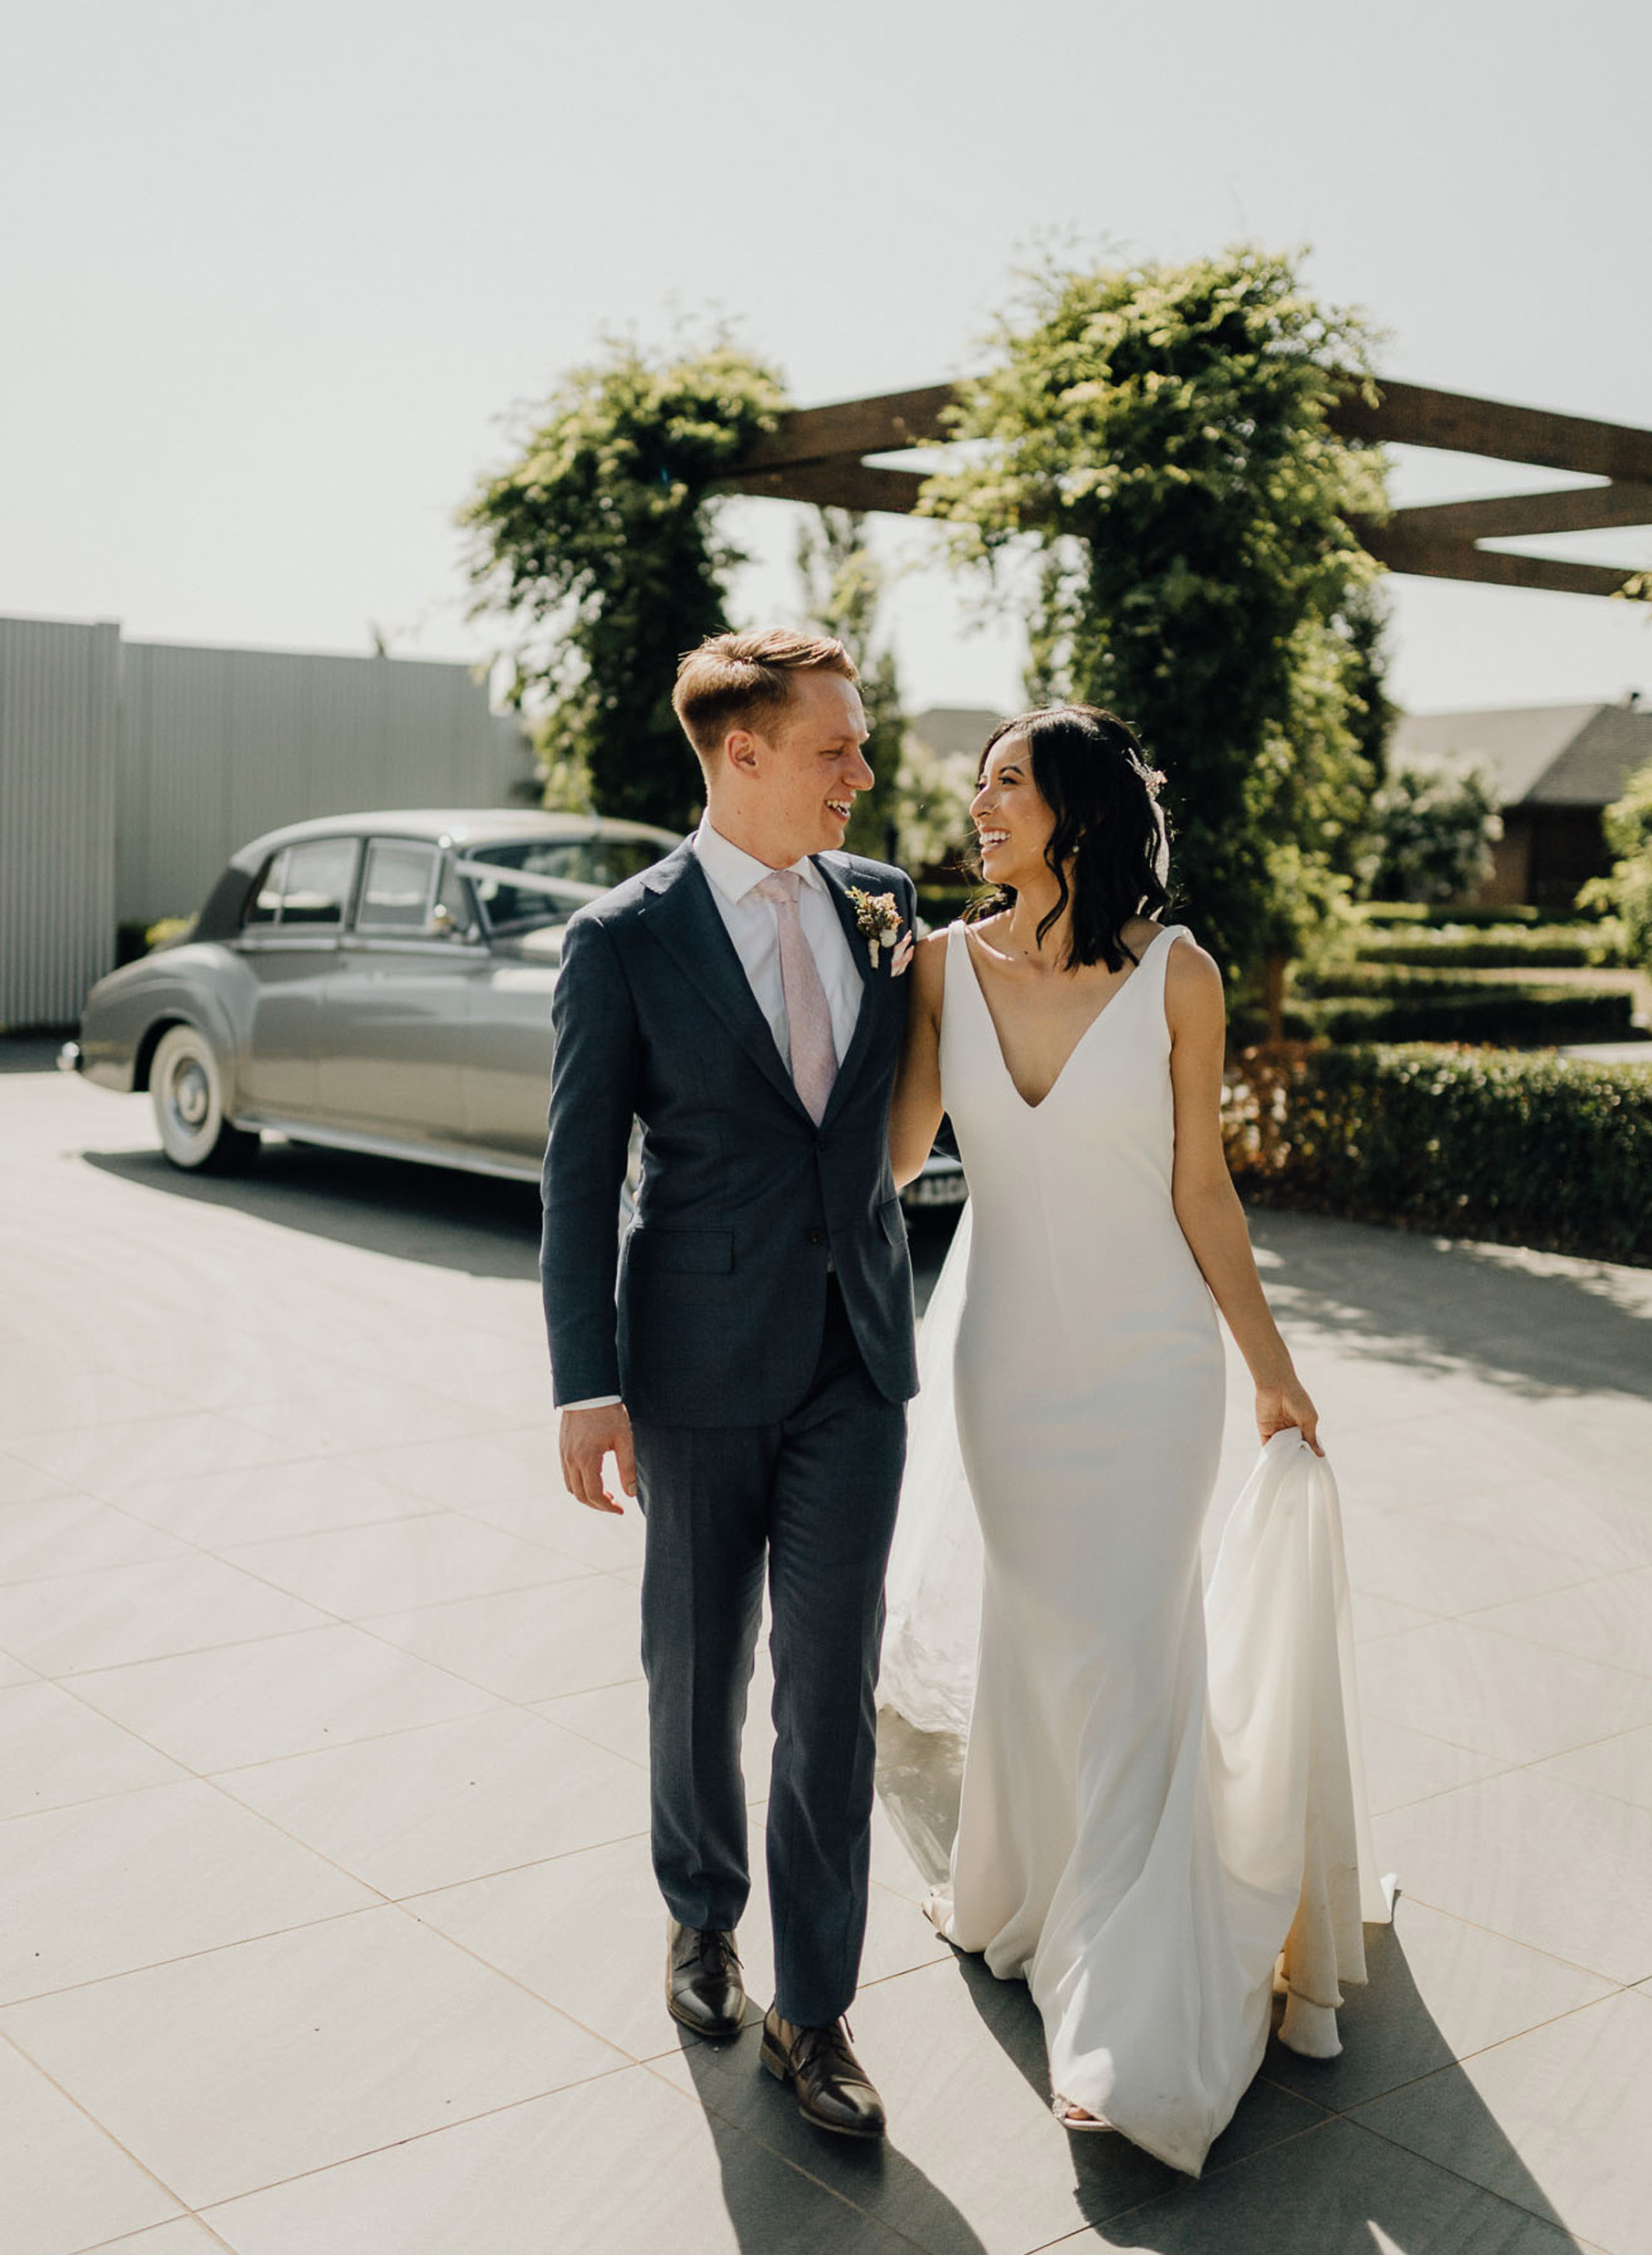 Wedding Photographer Hobart Pricing Packages